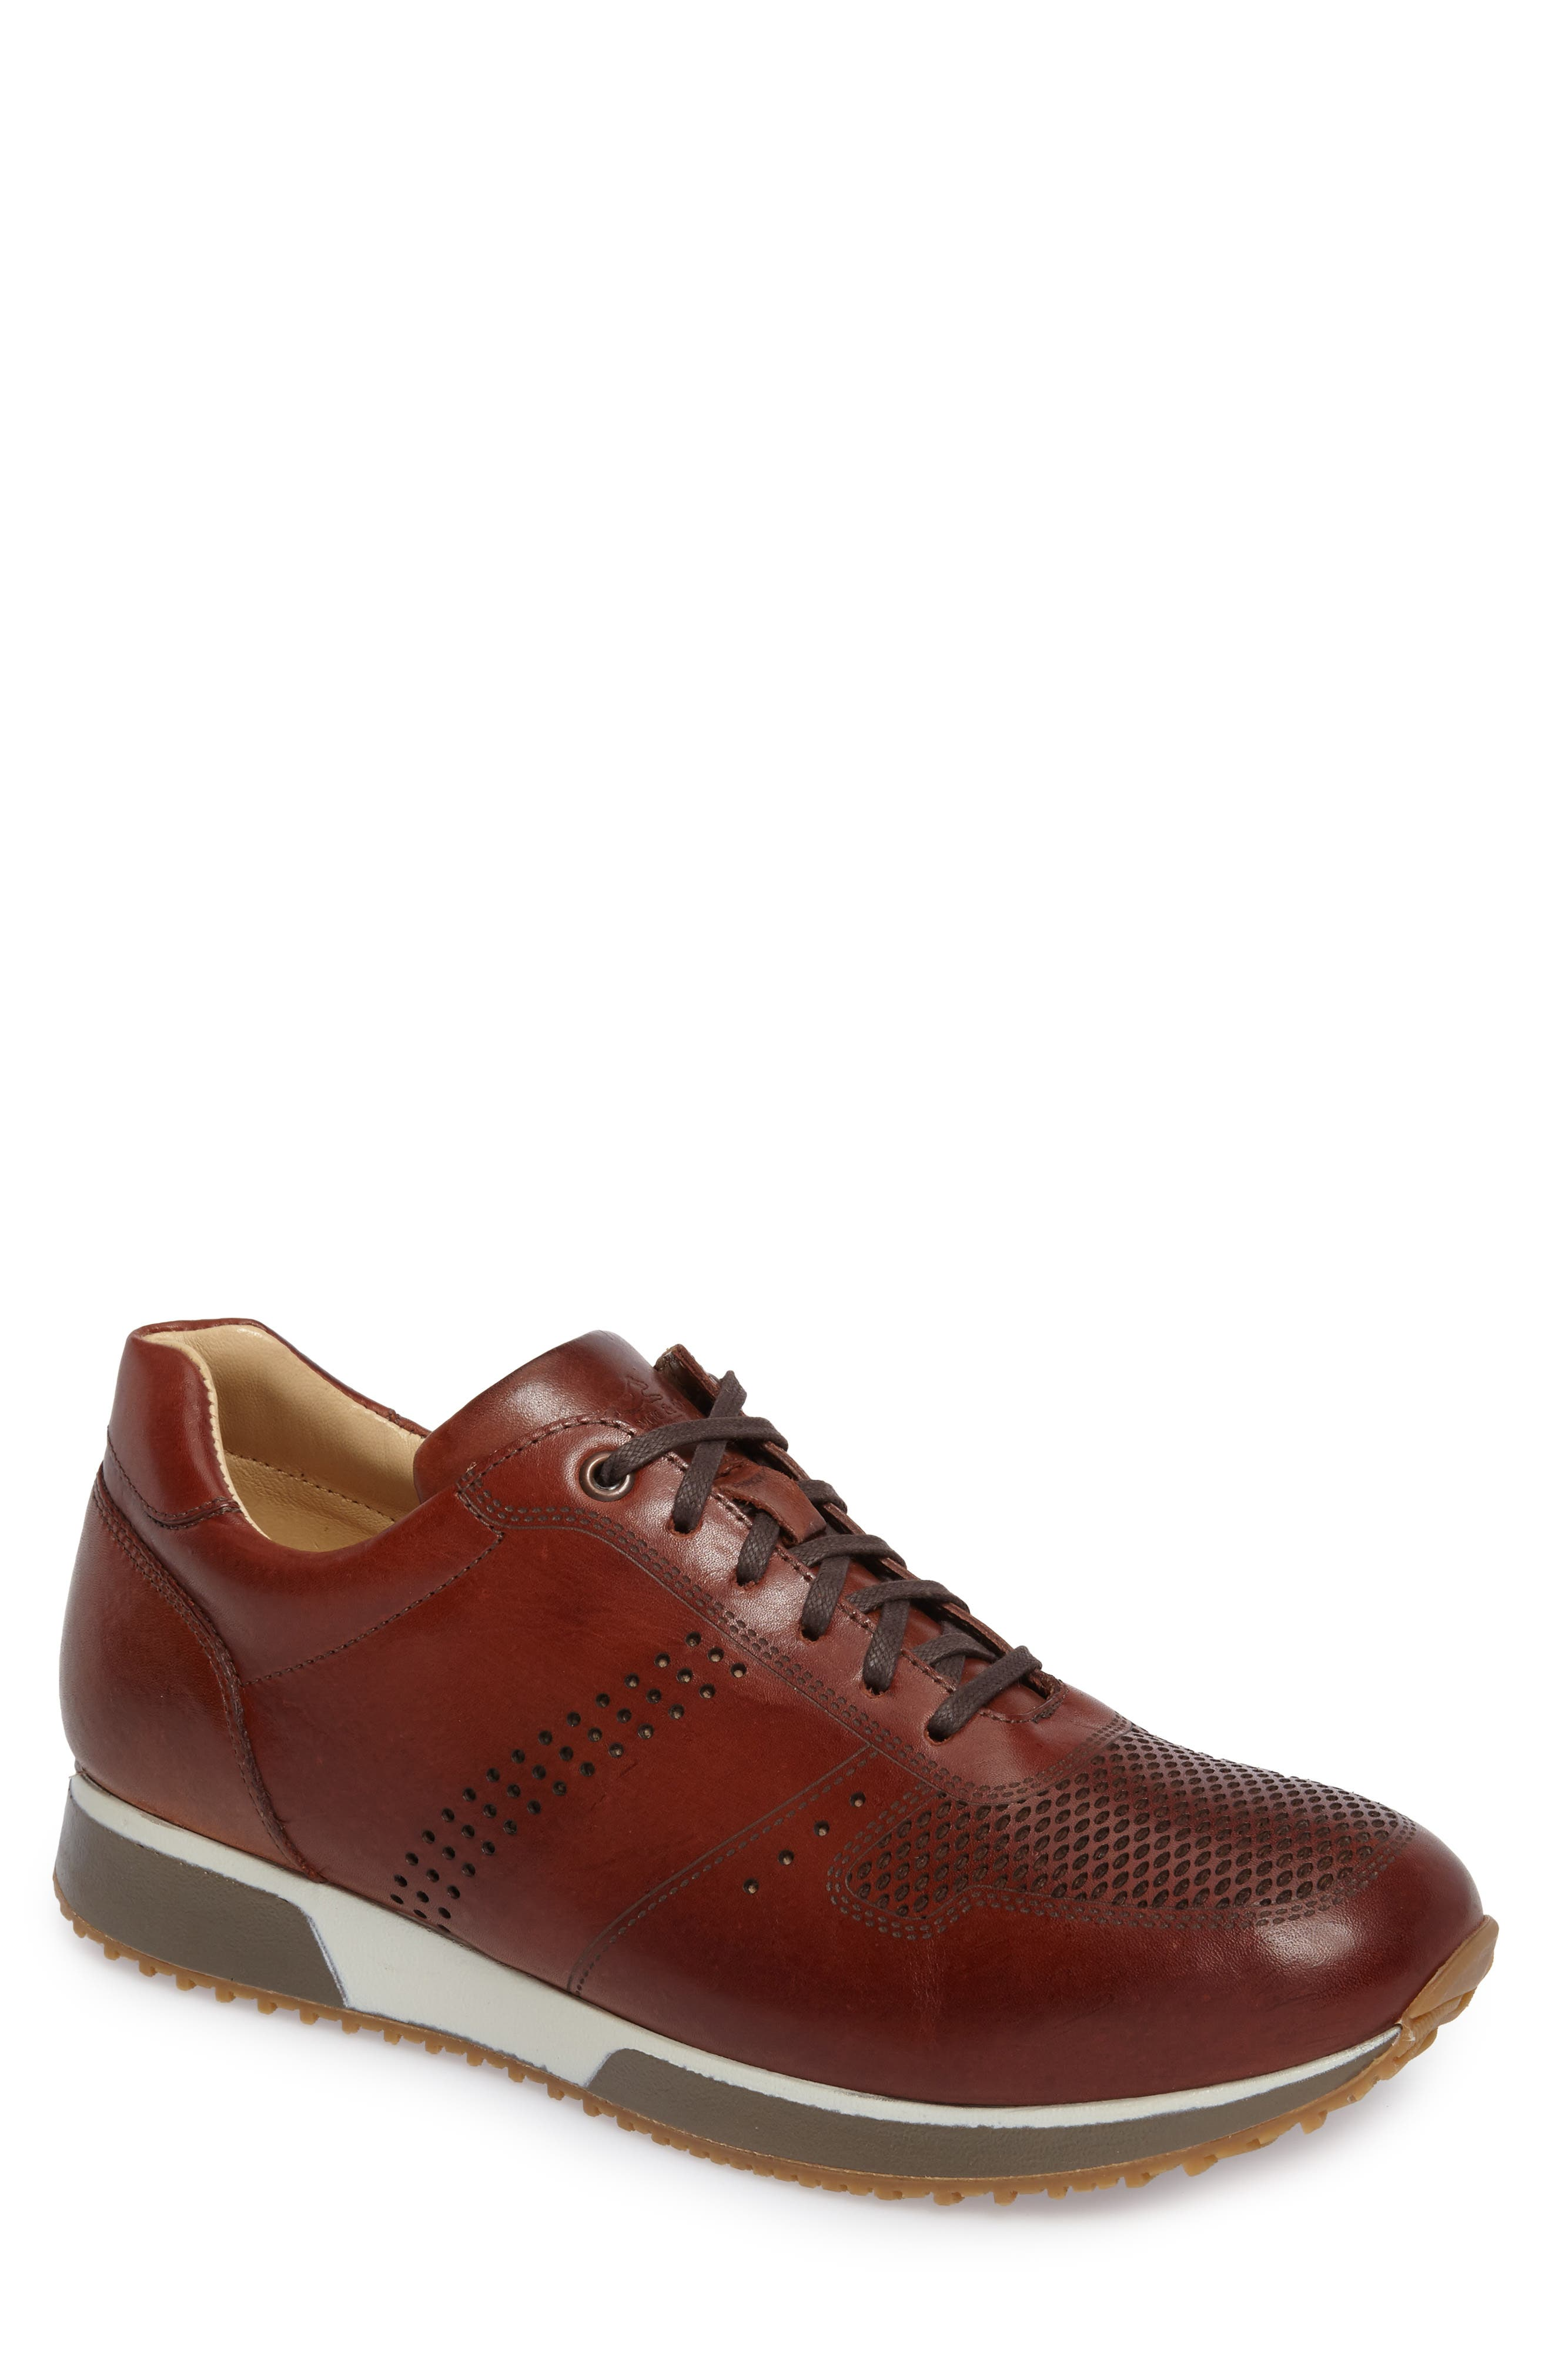 ANATOMIC & CO Classic Sneaker